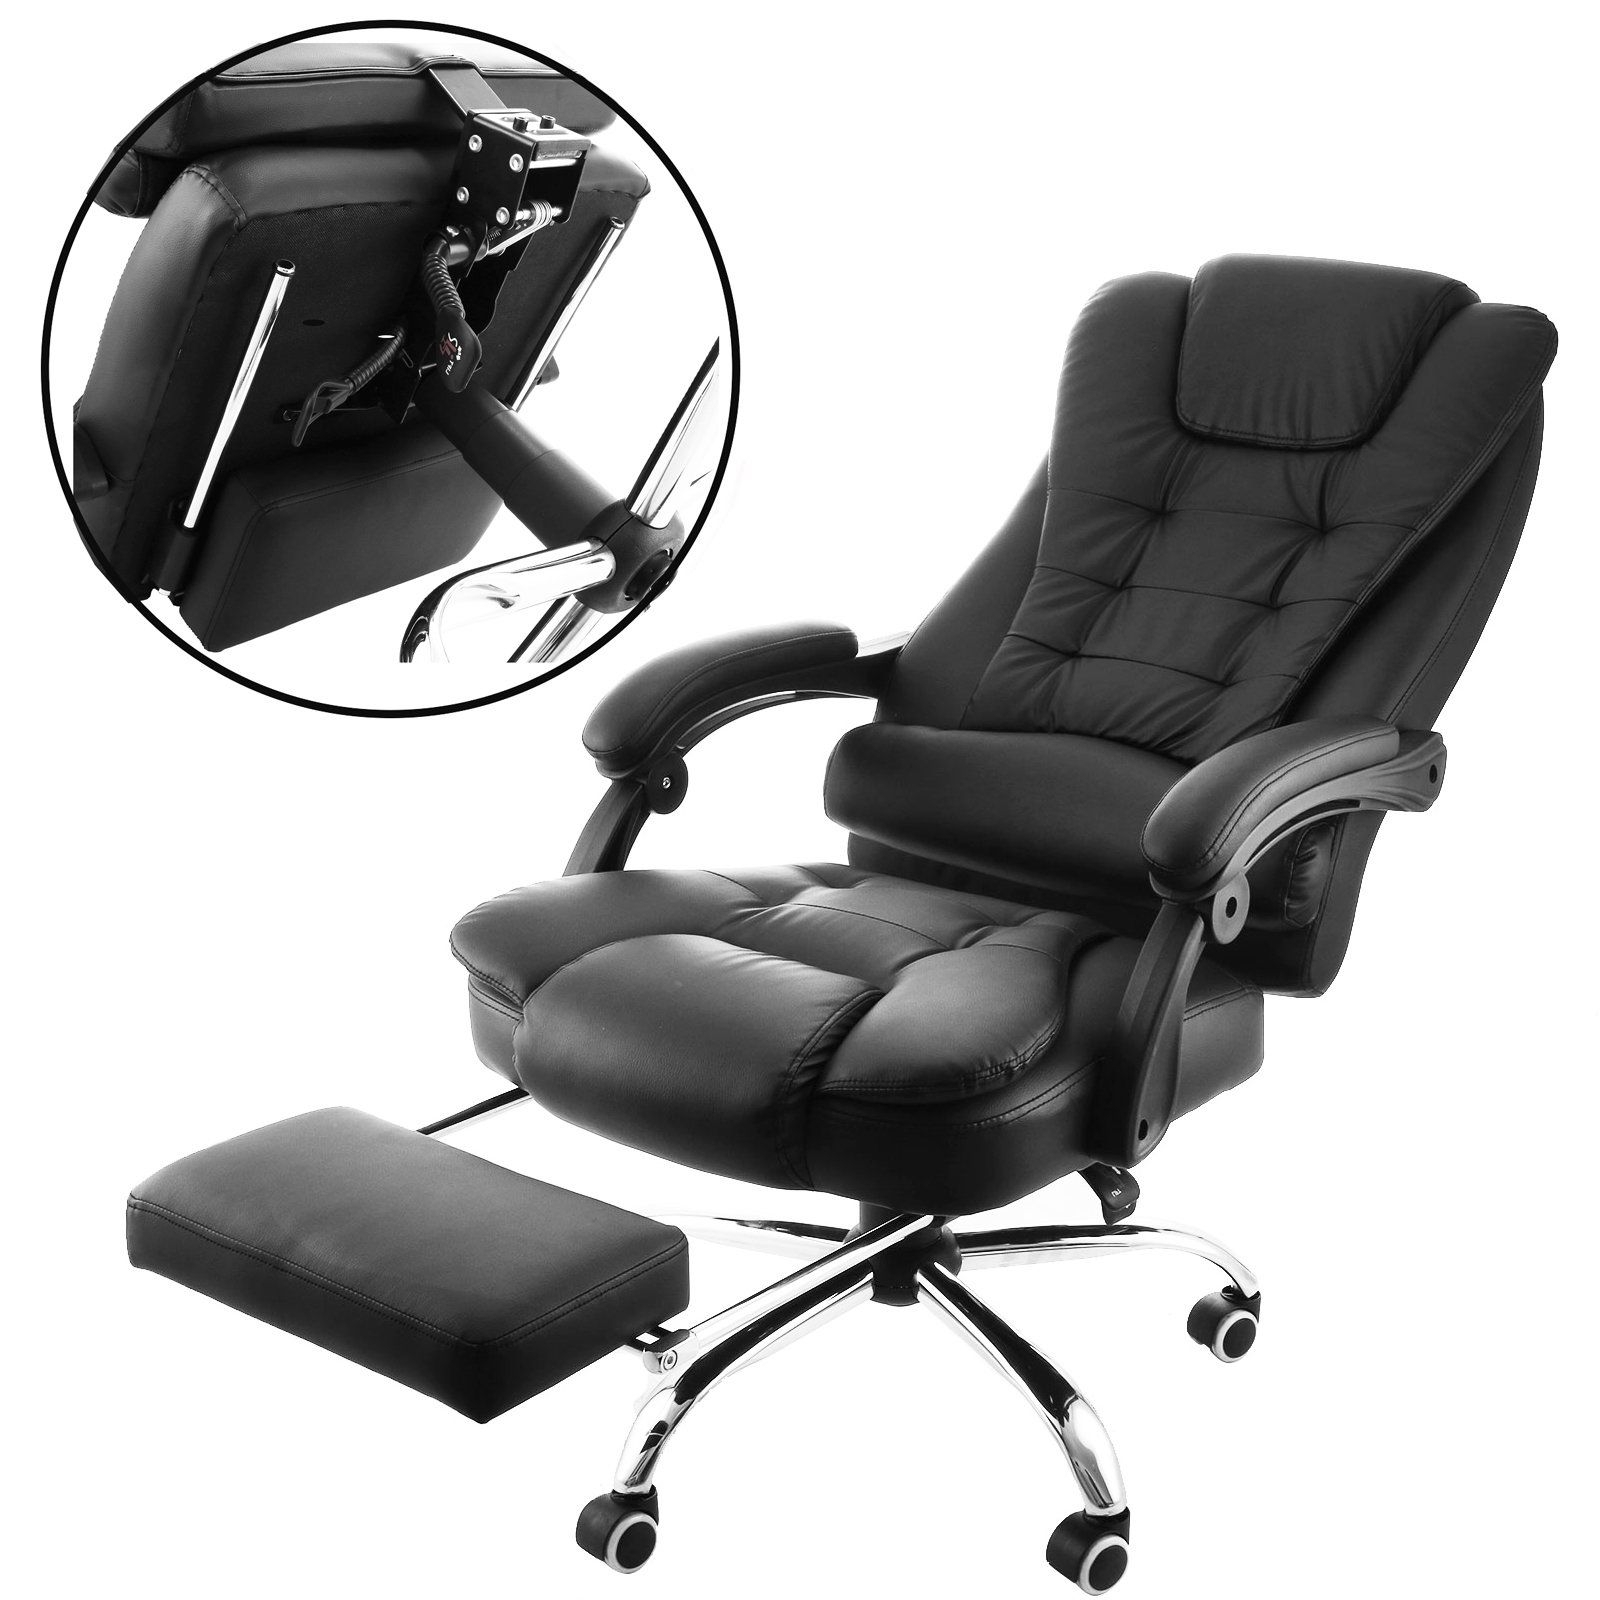 Orangea High Back Office Chair Ergonomic Pu Leather Executive With Preferred Leather Executive Office Massage Chairs (View 5 of 20)